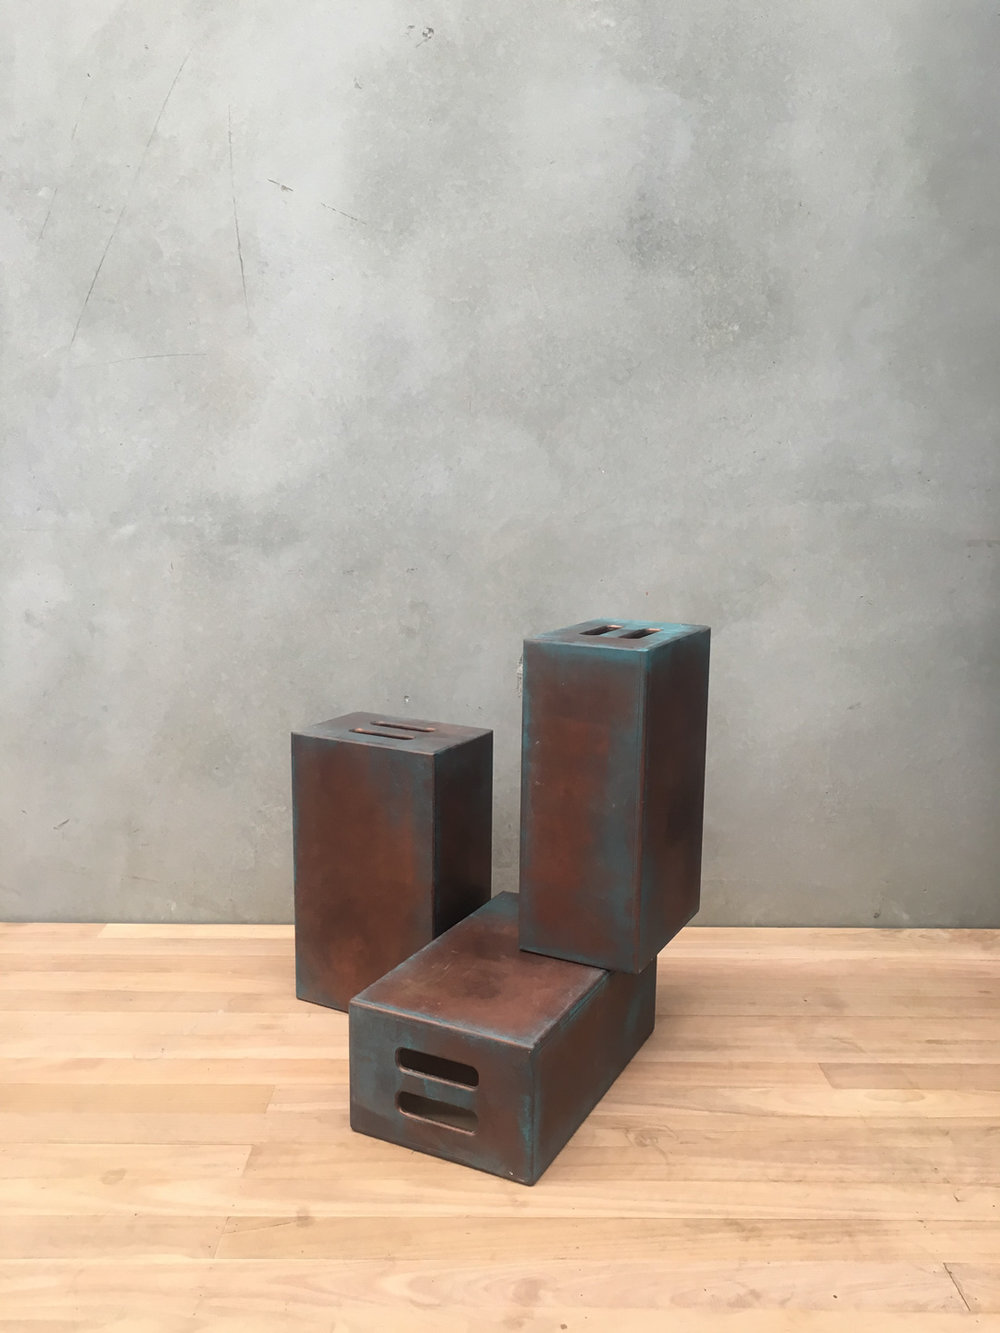 300 X 200 X 500 FULL APPLE BOXES RUST / TEAL